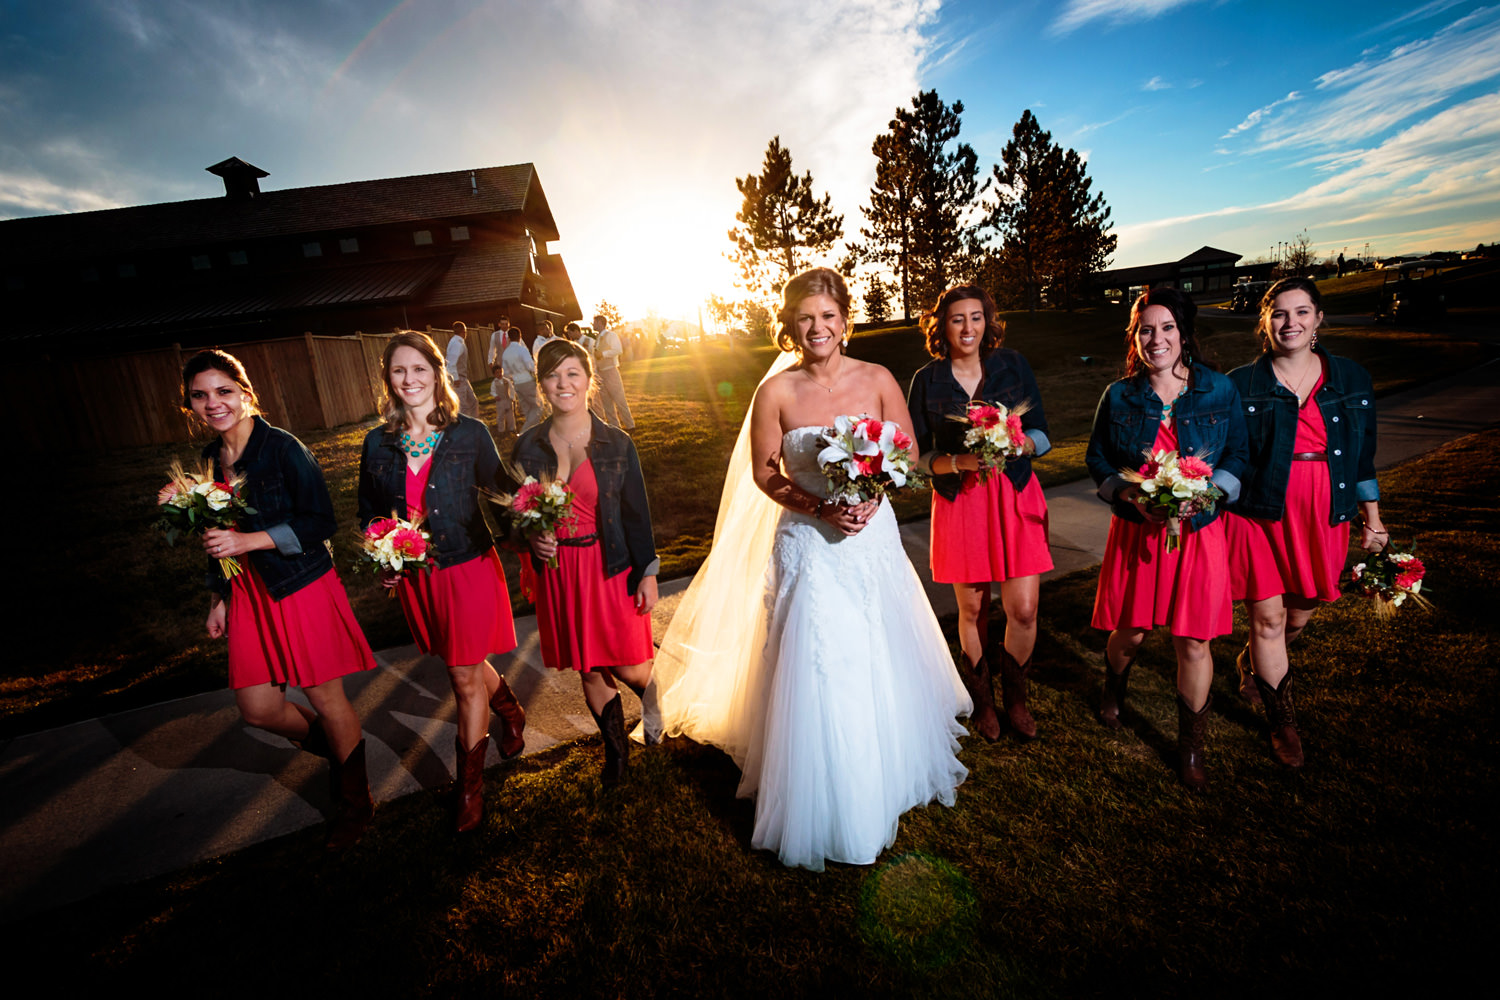 big-red-barn-highland-meadows-wedding-golfcourse-windsor016.jpg